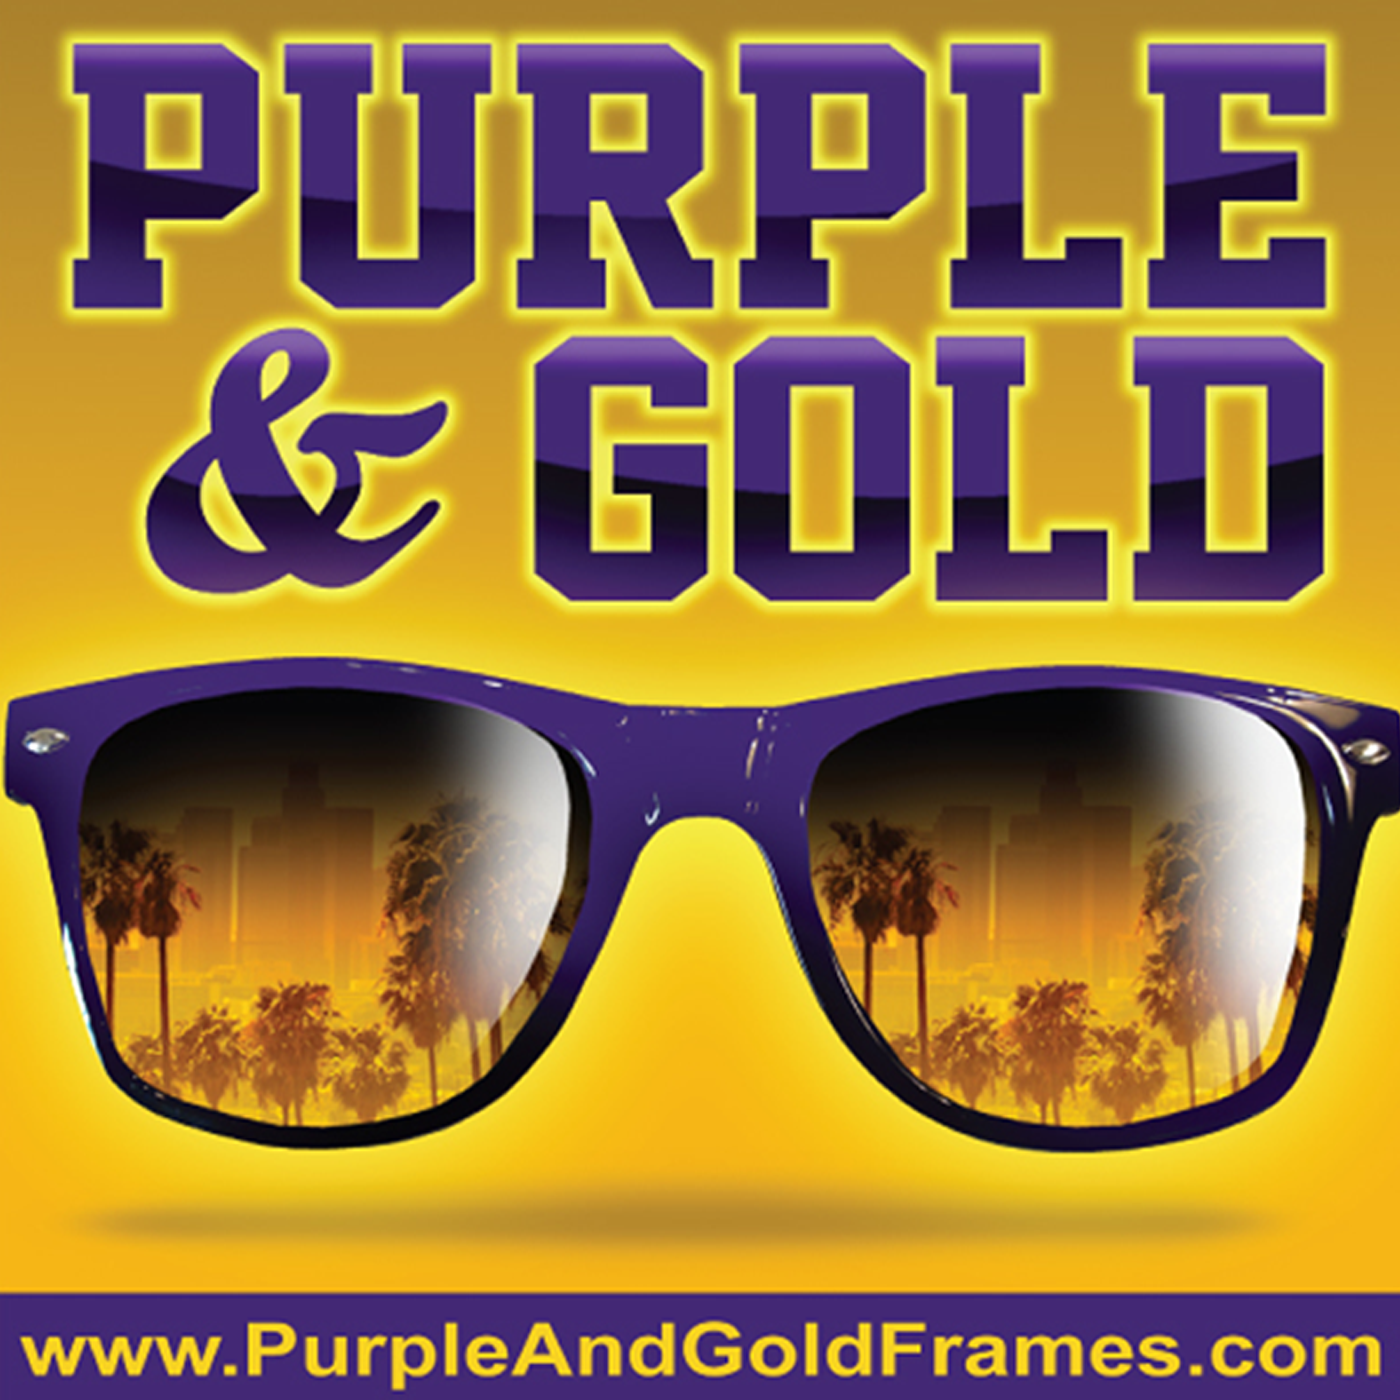 Through Purple and Gold Frames